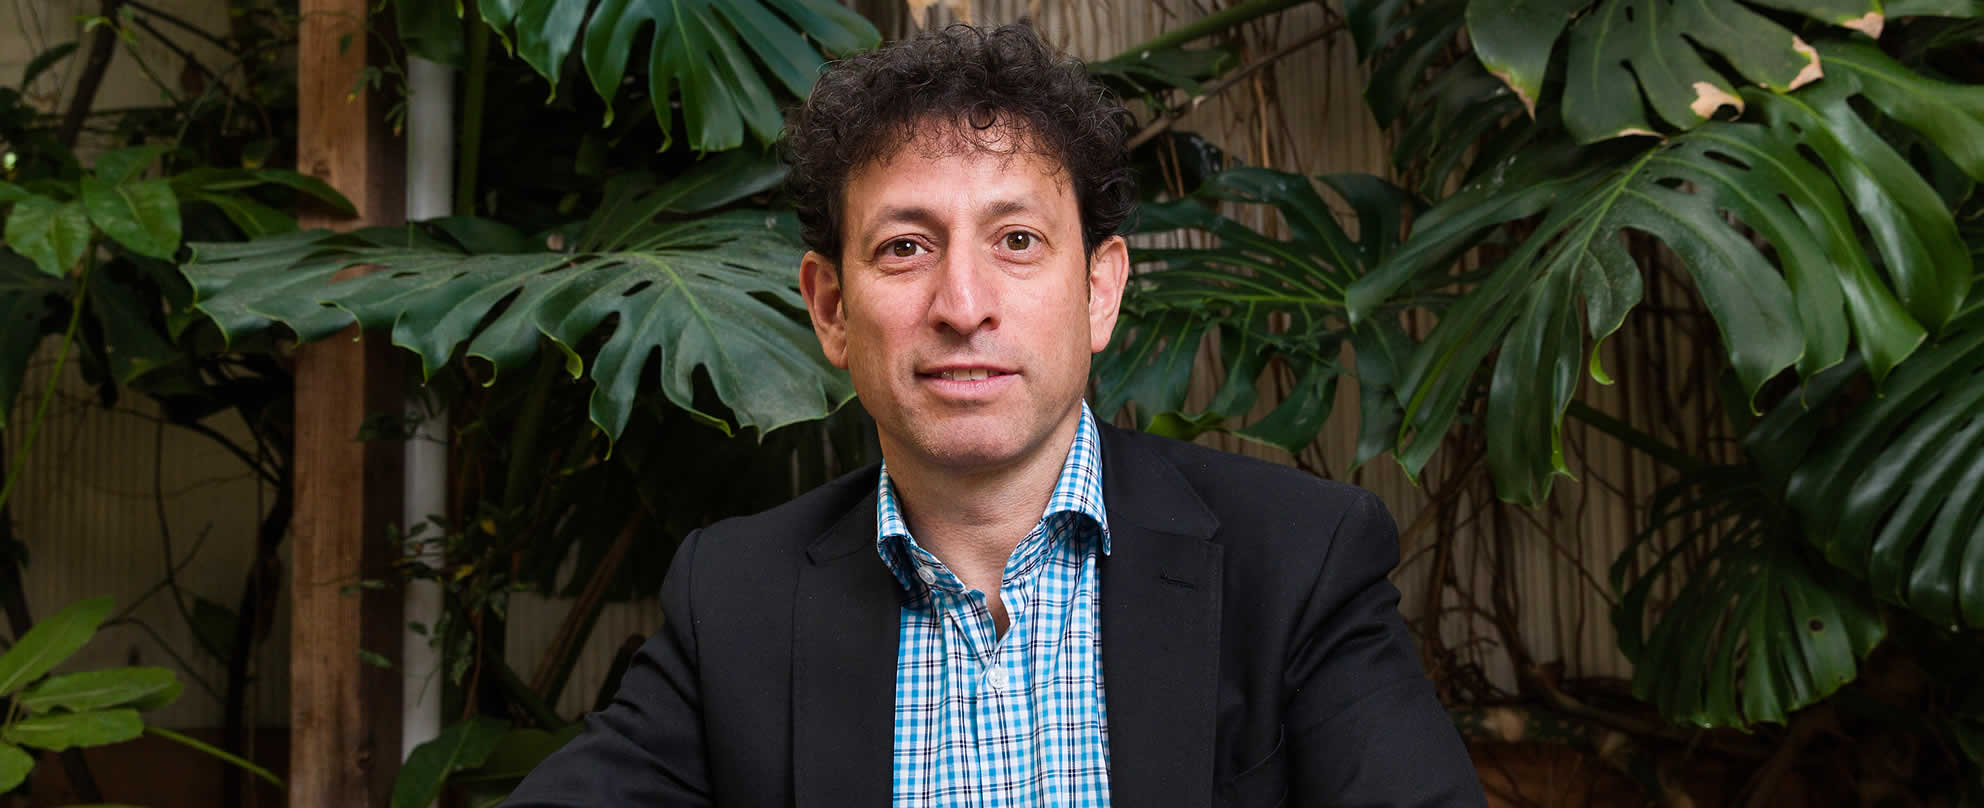 Professor Dan Lubman, photo: Paul Jeffers